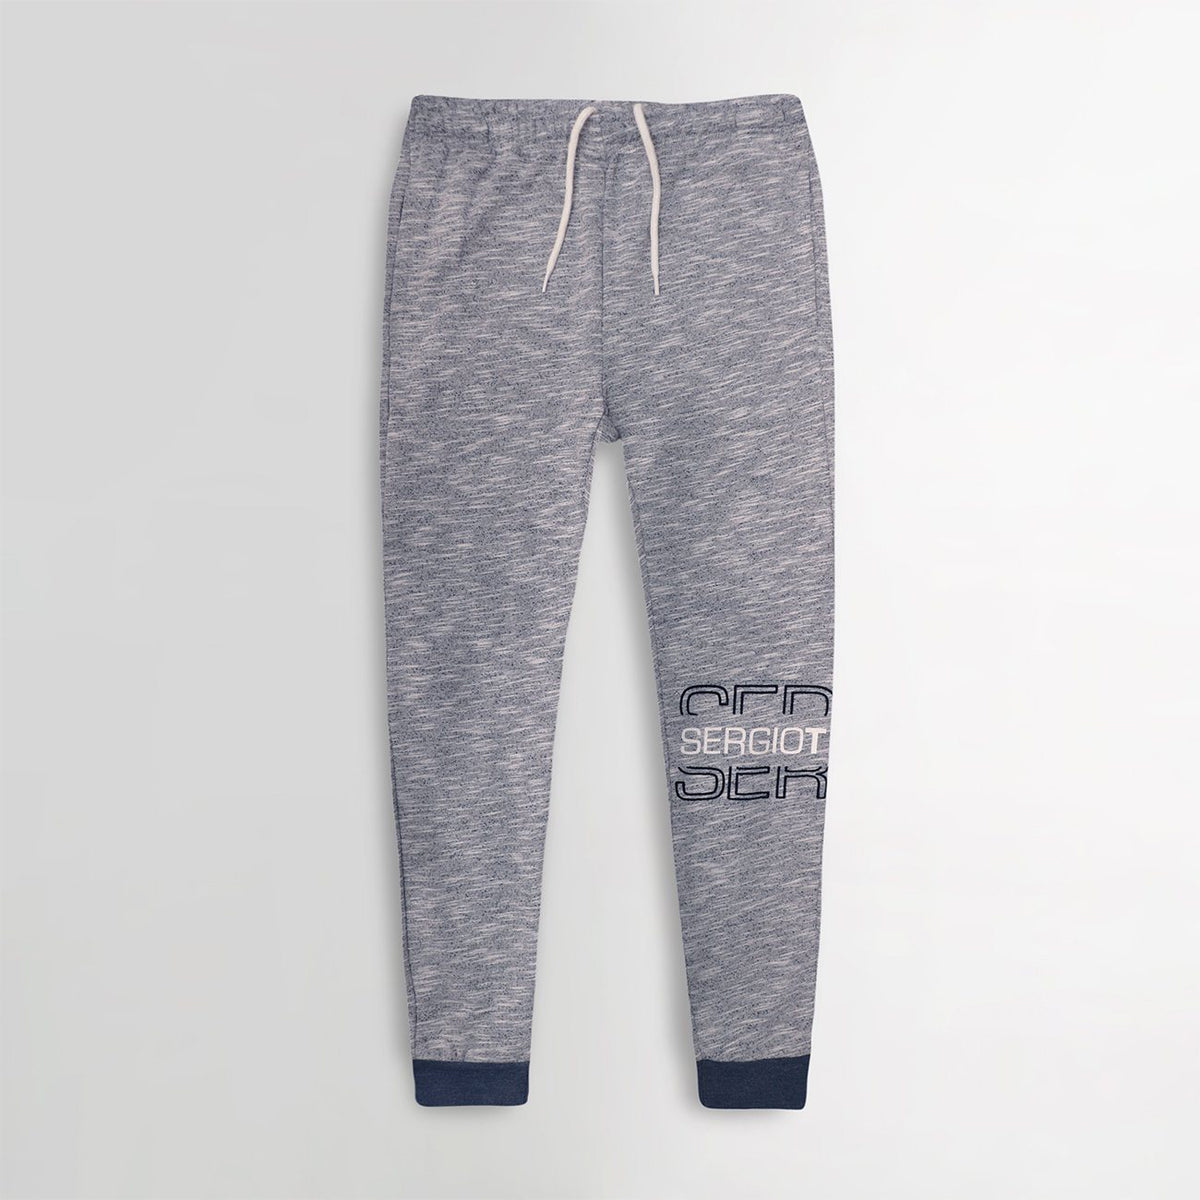 Men Exclusive Textured Grey Slim Fit Printed Jogger Trouser (30269)